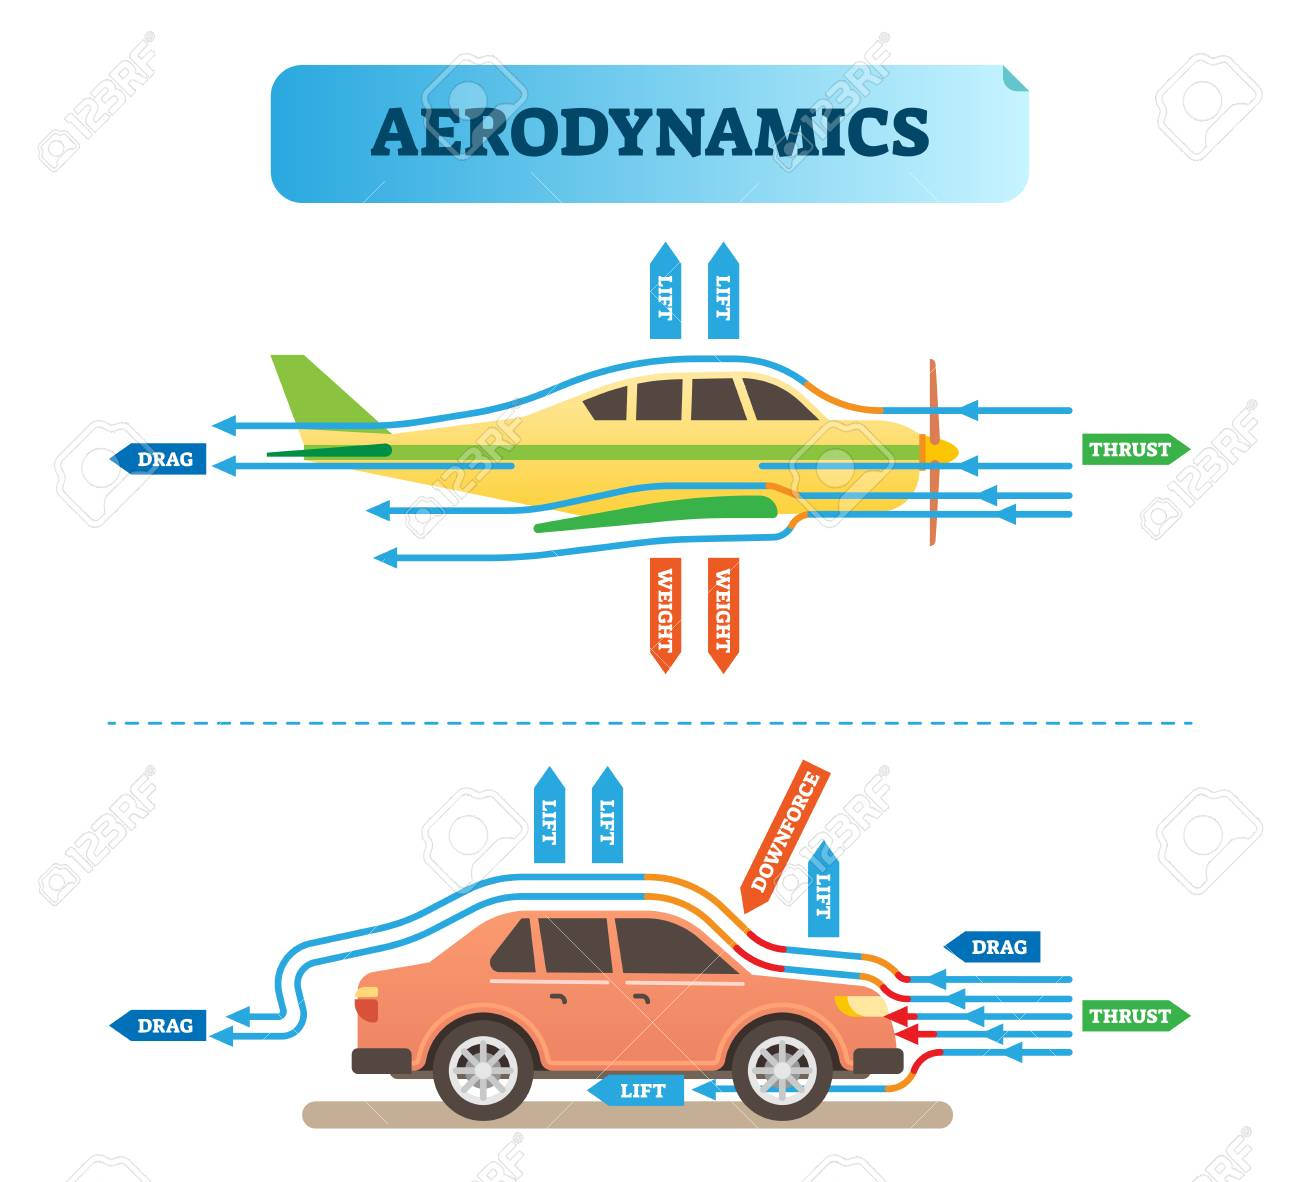 hight resolution of aerodynamics air flow engineering vector illustration diagram with airplane and car physics wind force resistance